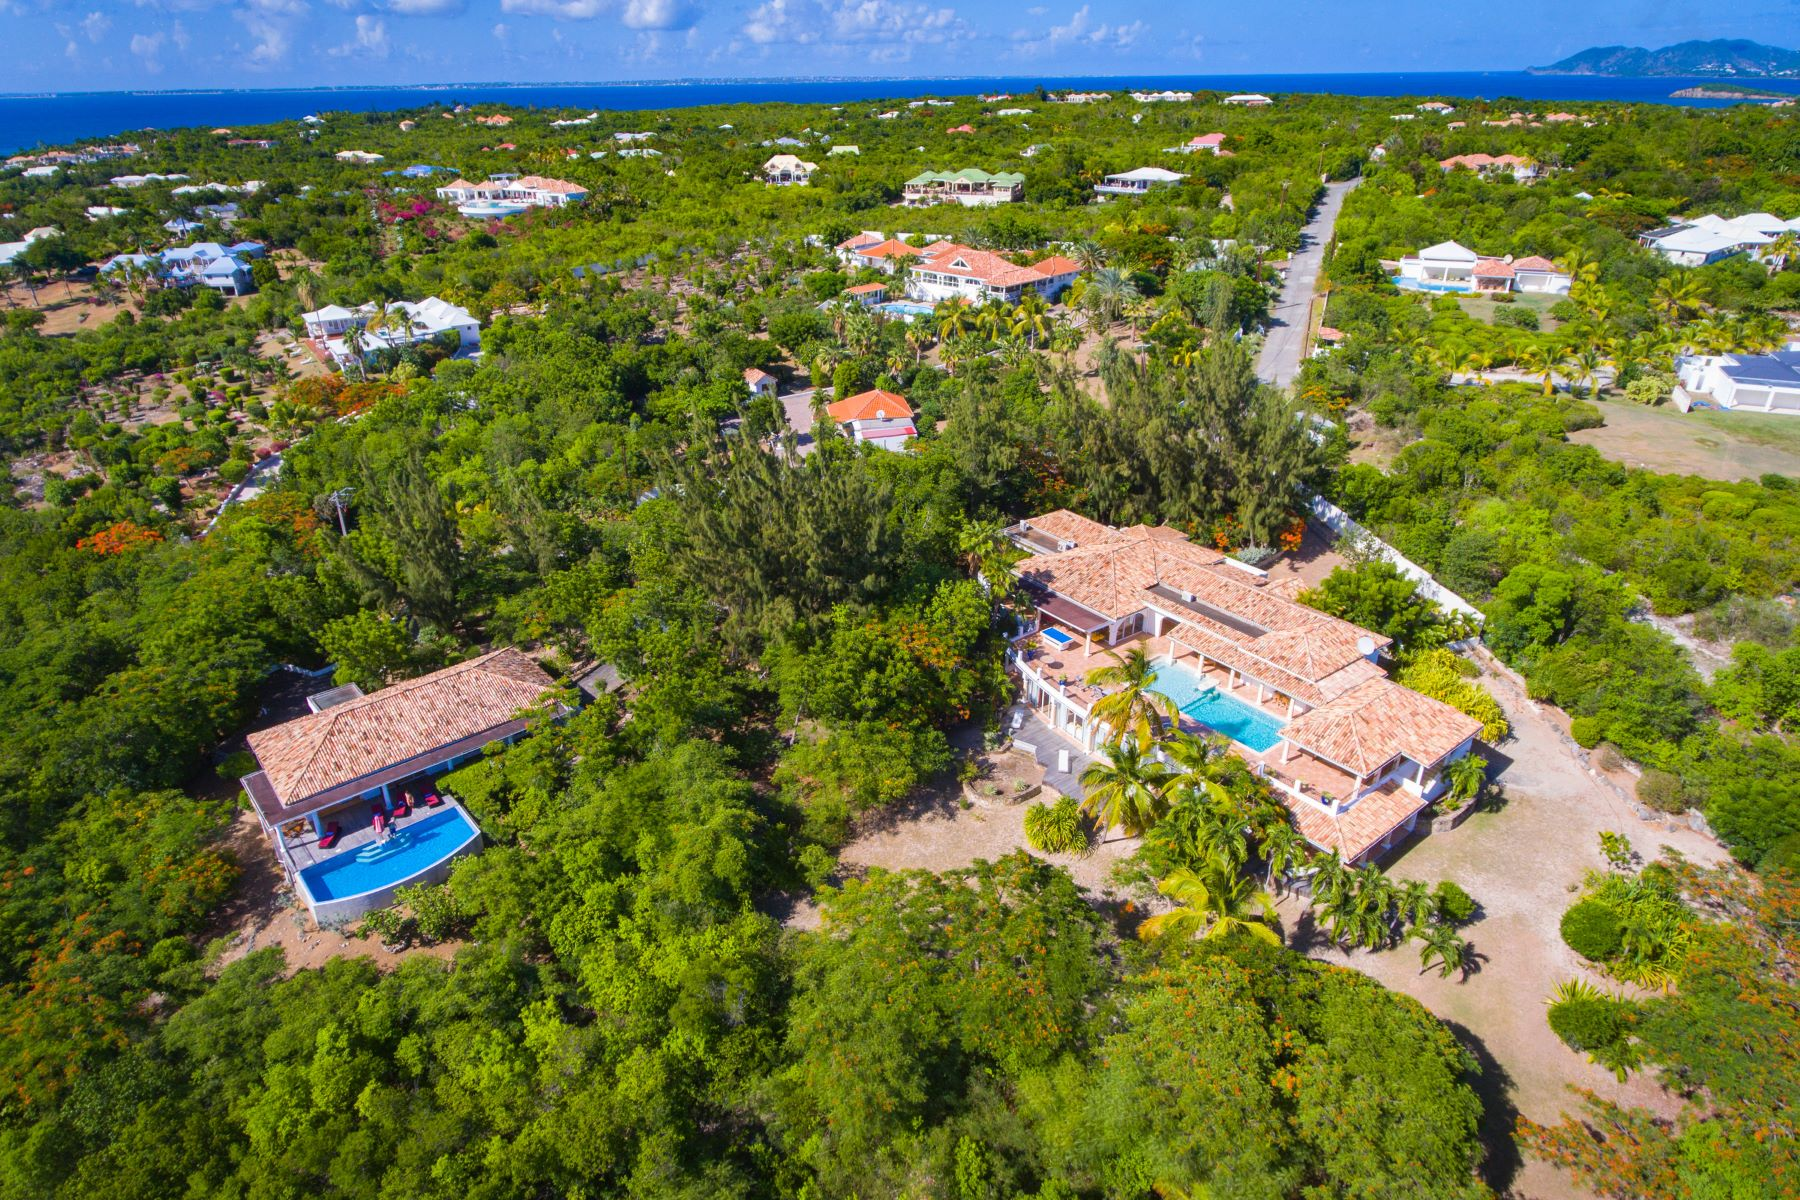 Single Family Home for Sale at La Provençale Terres Basses, Cities In Saint Martin 97150 St. Martin